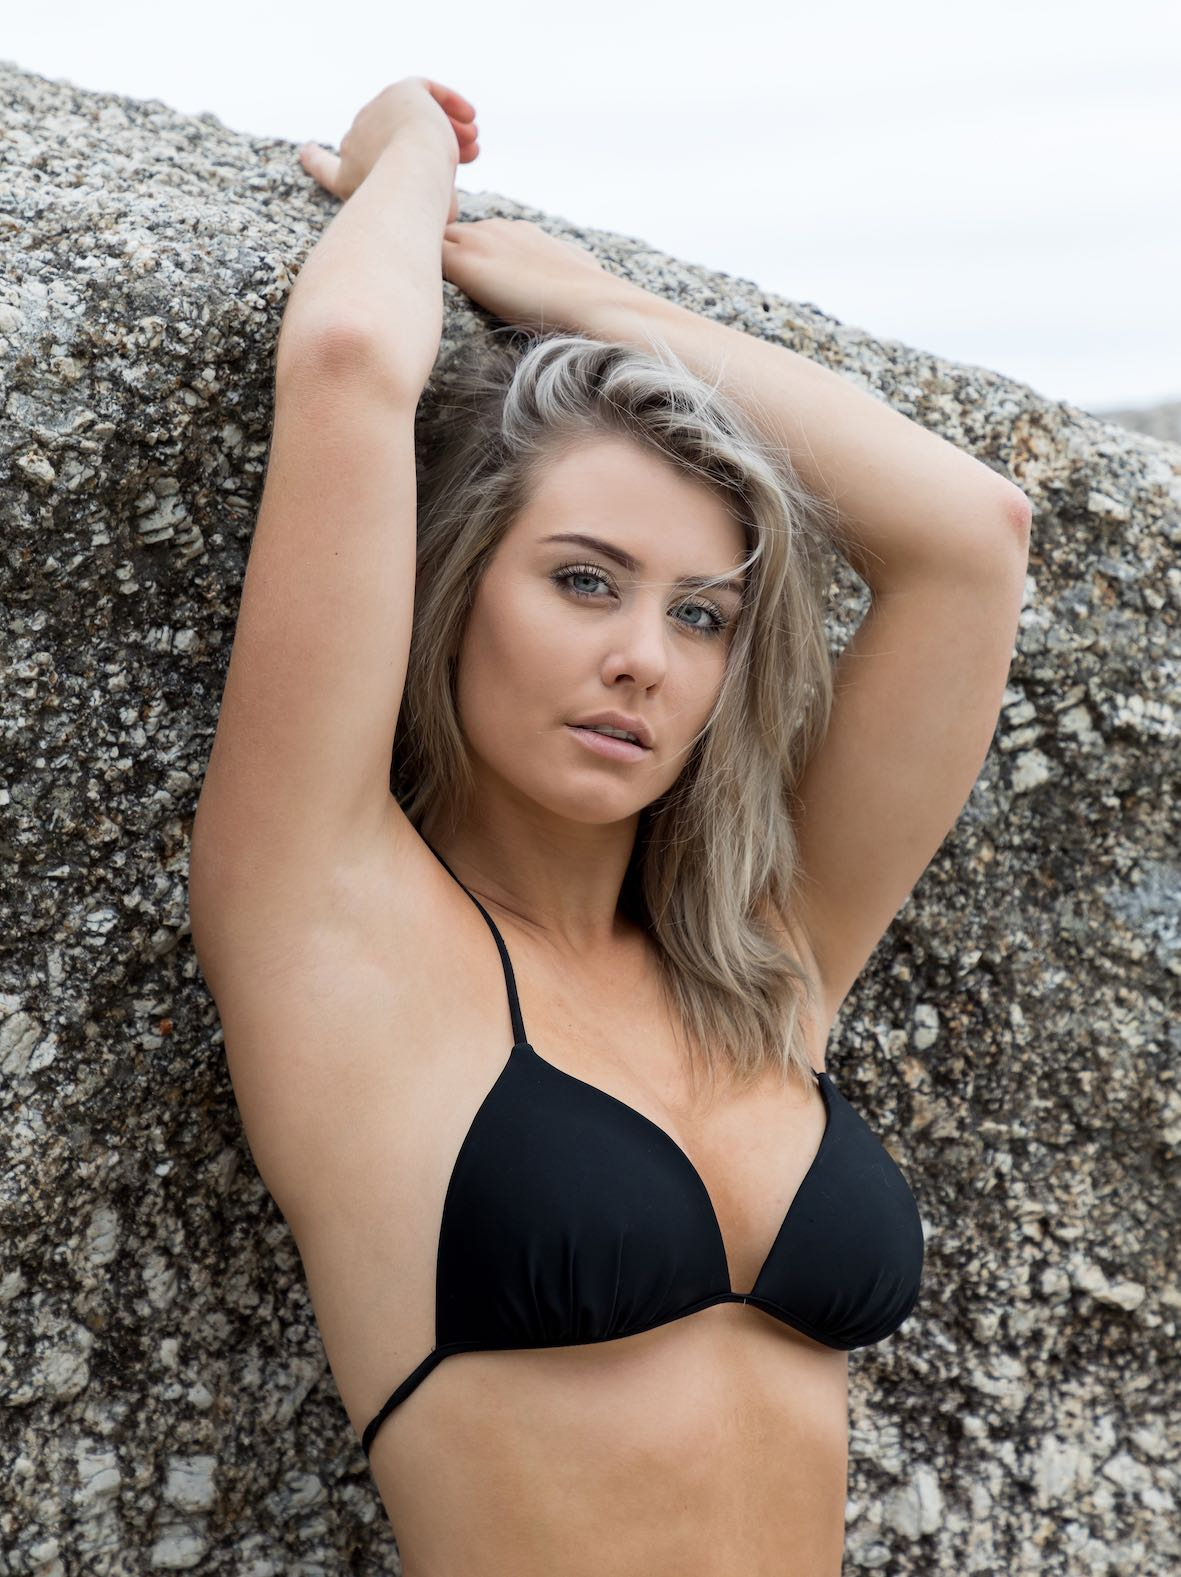 Our South African Girls feature with Delanie Kruger